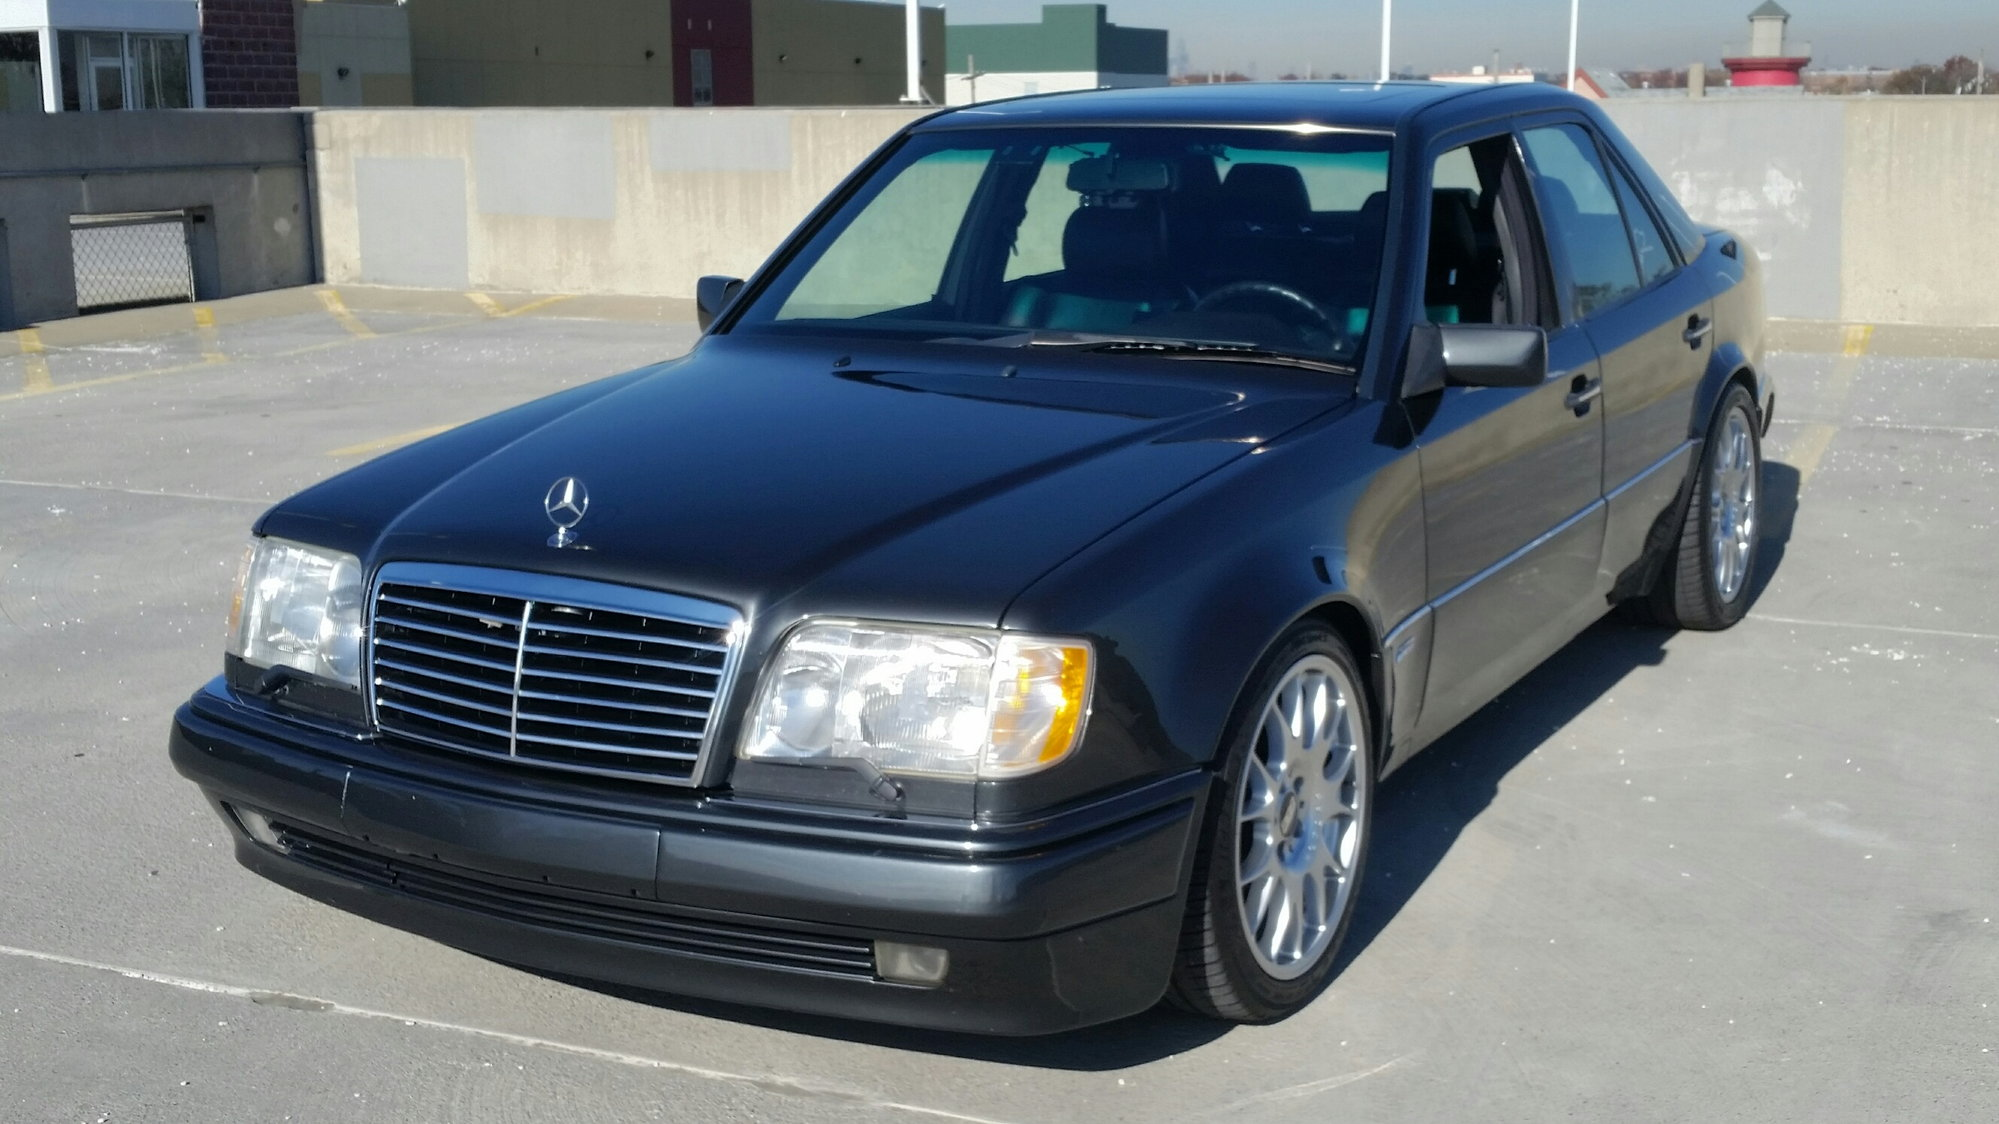 W124 E-Class Picture Thread - Page 146 - MBWorld org Forums